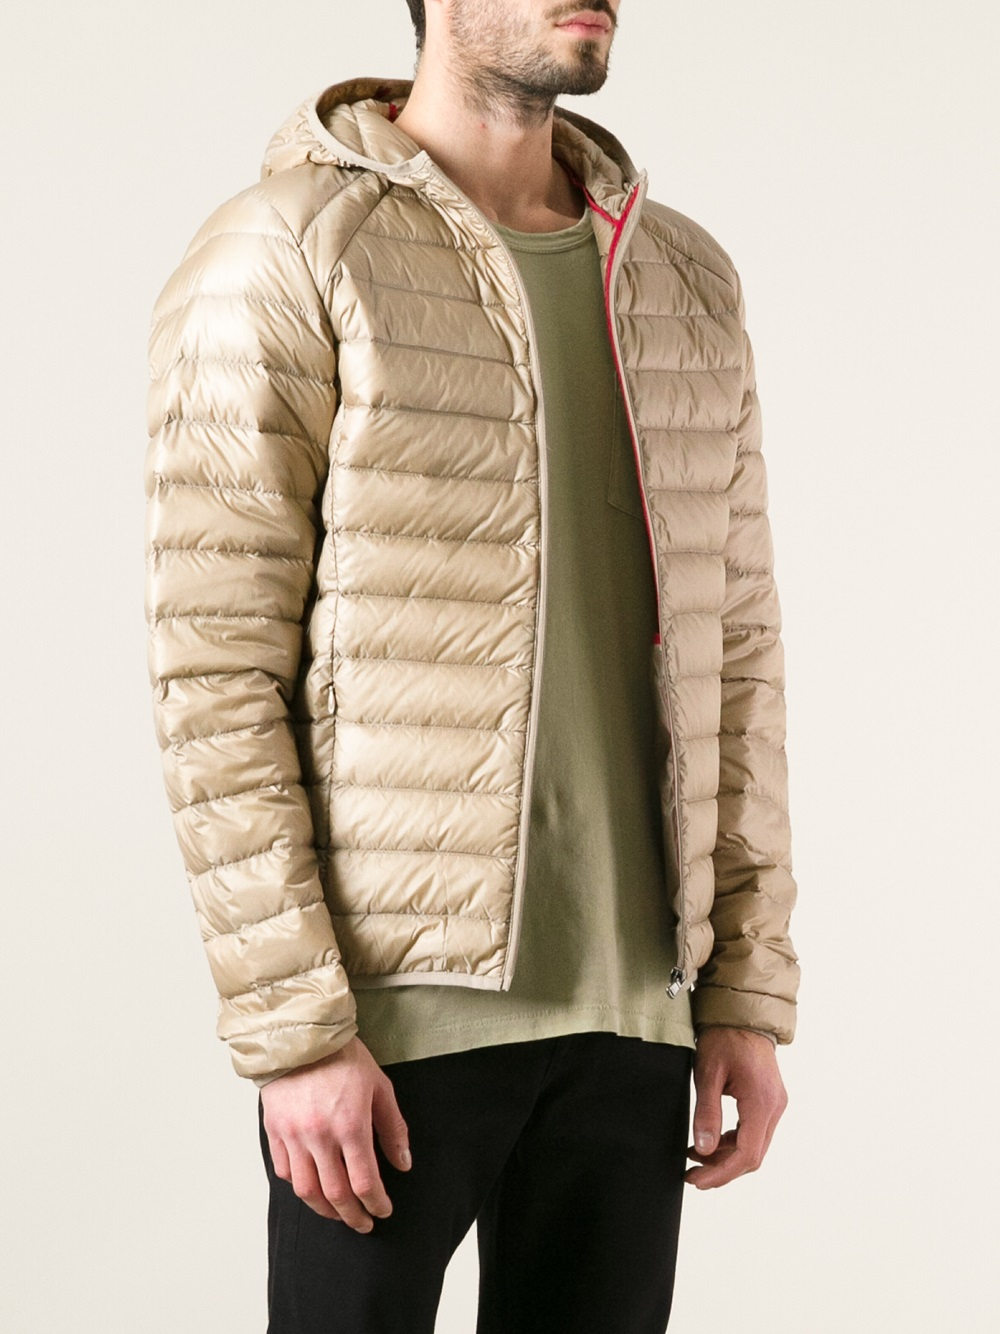 Lyst - J.o.t.t Feather Down Jacket in Natural for Men